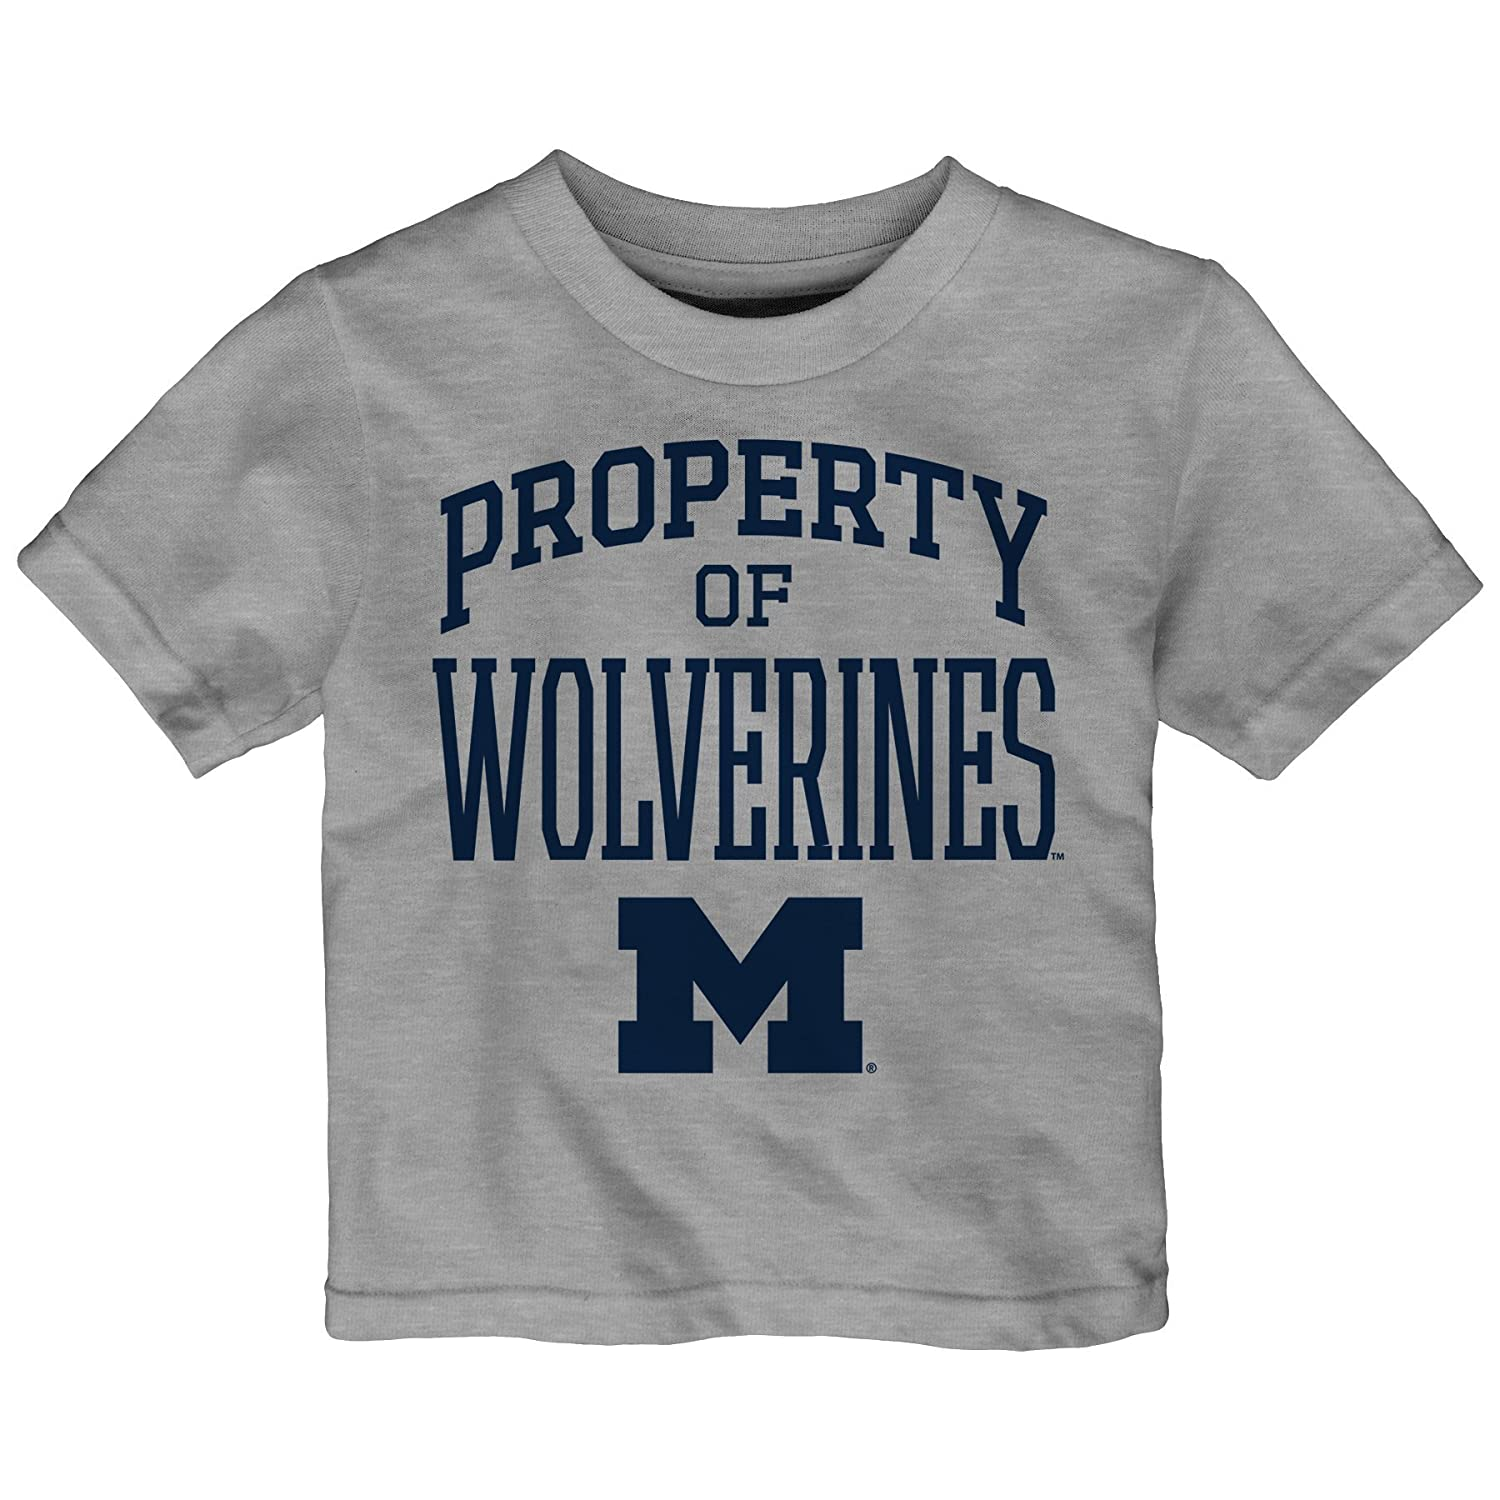 3T Heather Grey Outerstuff NCAA Michigan Wolverines Toddler Team Property Short Sleeve Tee